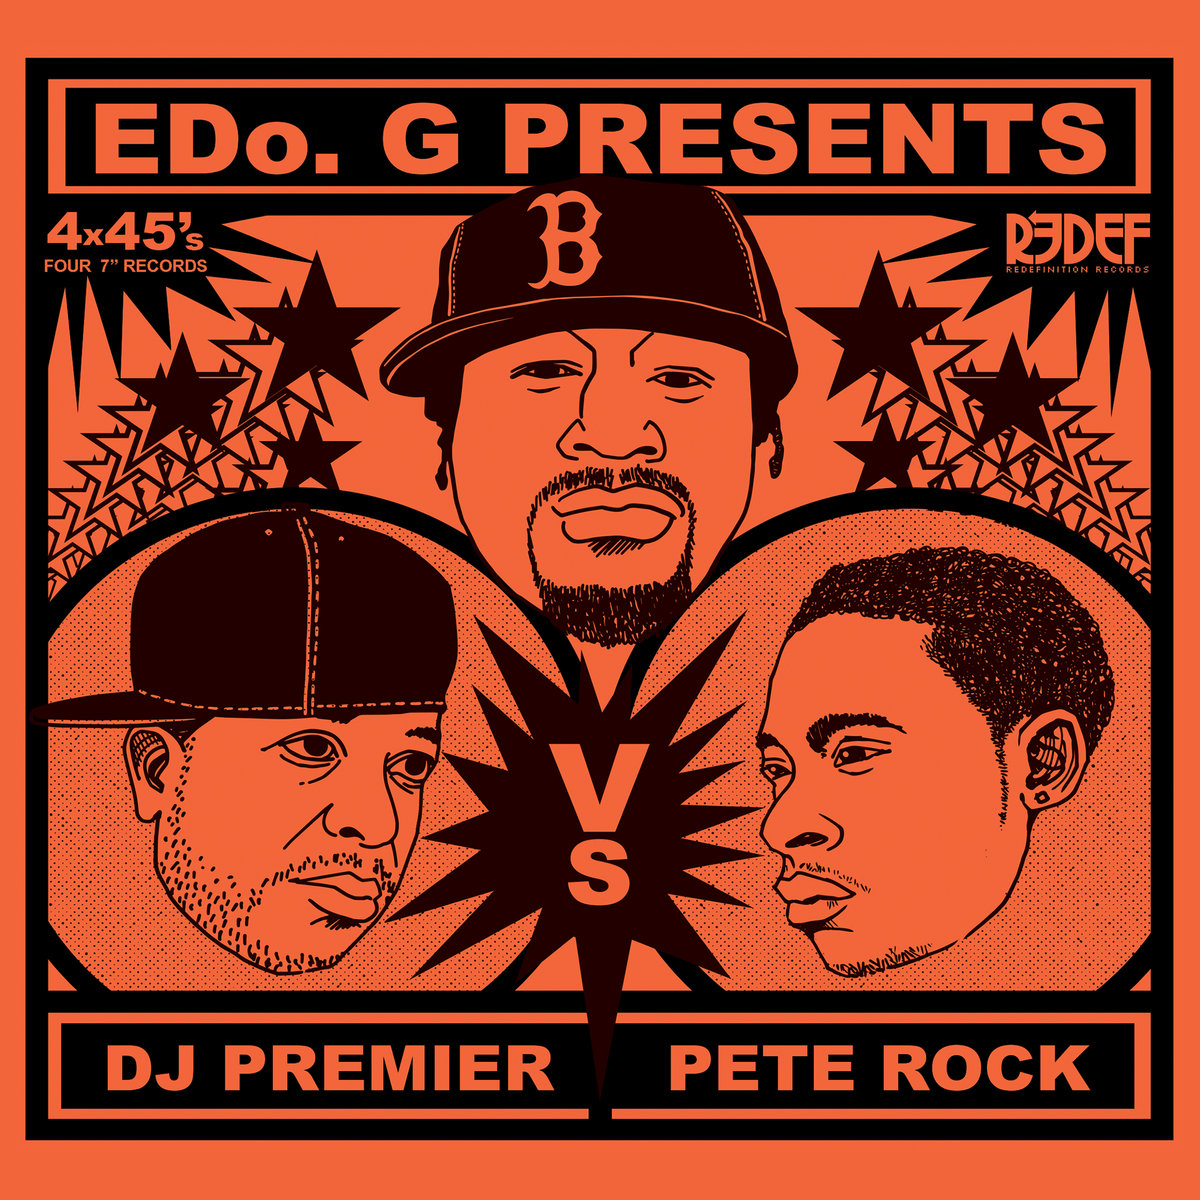 Listen: Edo. G presents DJ Premier VS Pete Rock (Album)